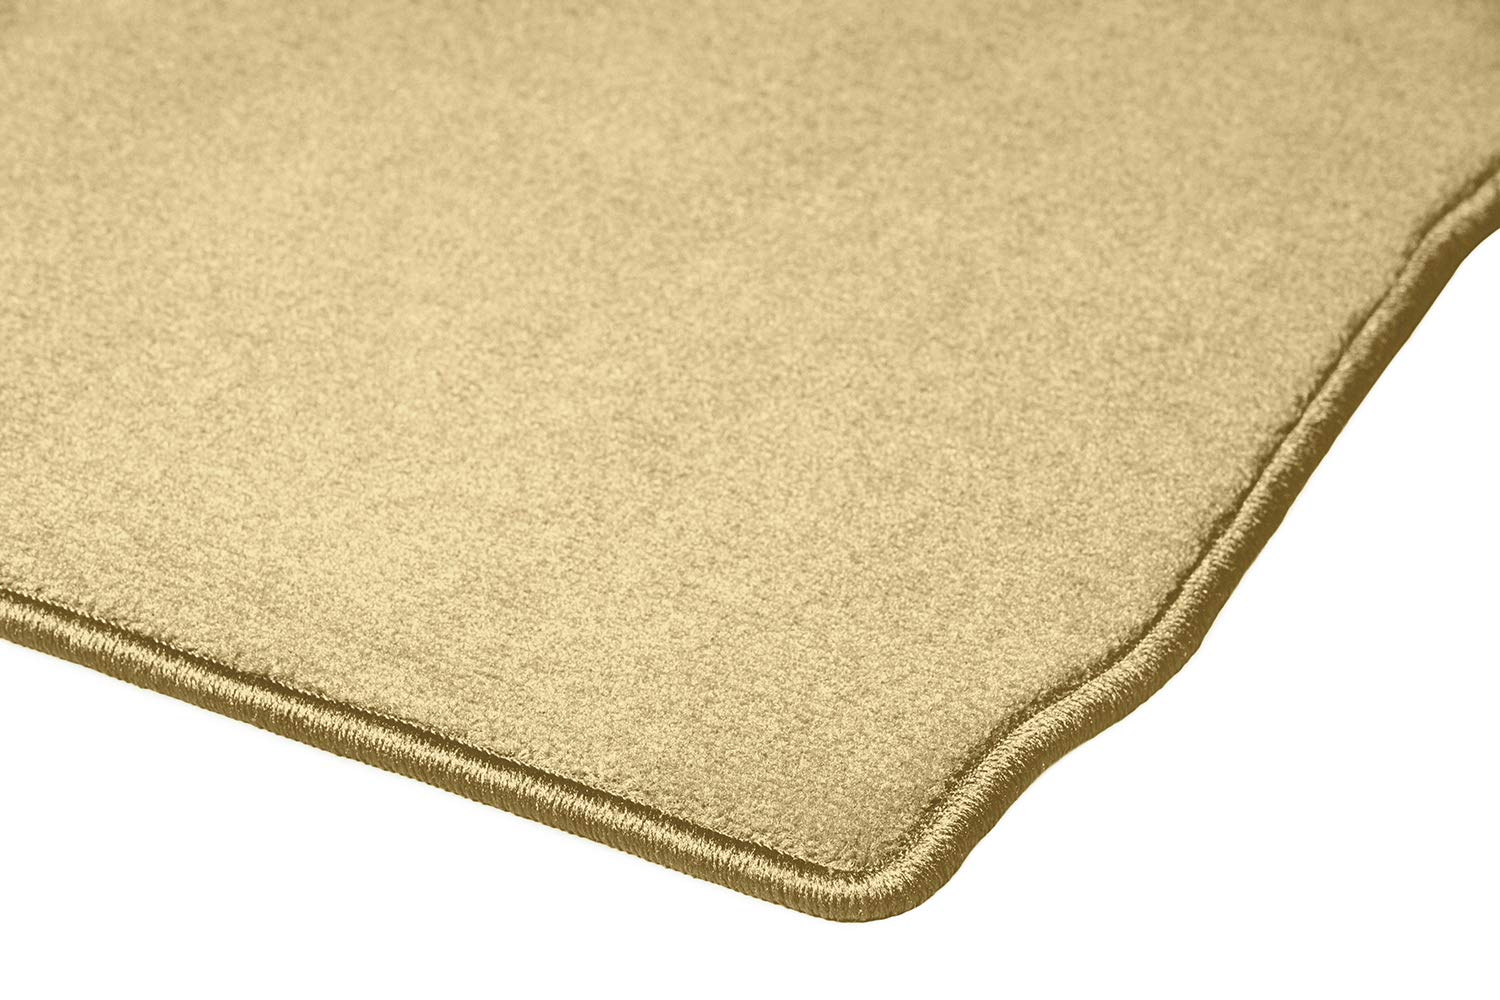 GGBAILEY D60356-F1A-BGE Custom Fit Car Mats for 2017 2018 2019 Land Rover Discovery Beige Driver /& Passenger Floor